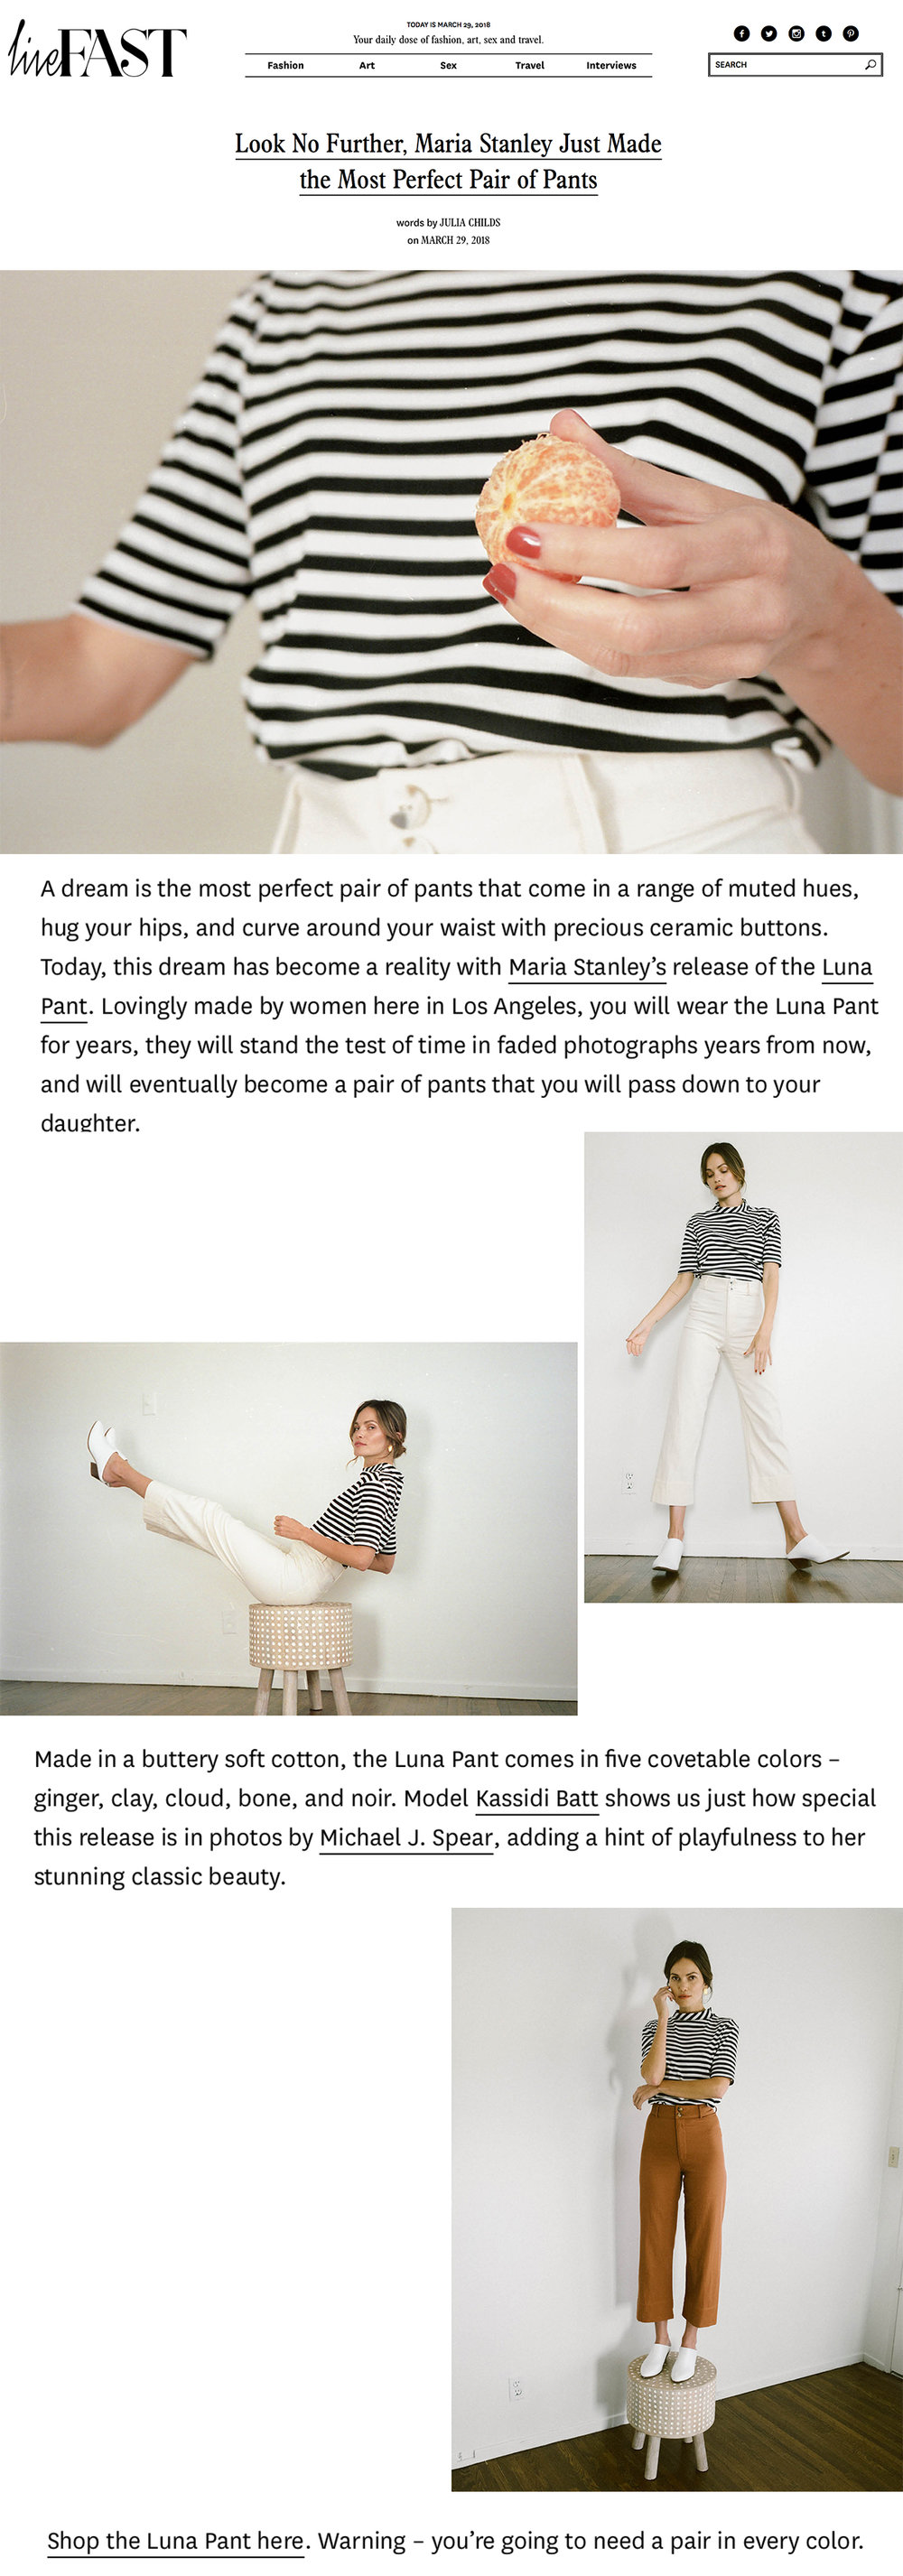 LIVE FAST MAG  writes about the launch of the LUNA PANT. (March 2018)